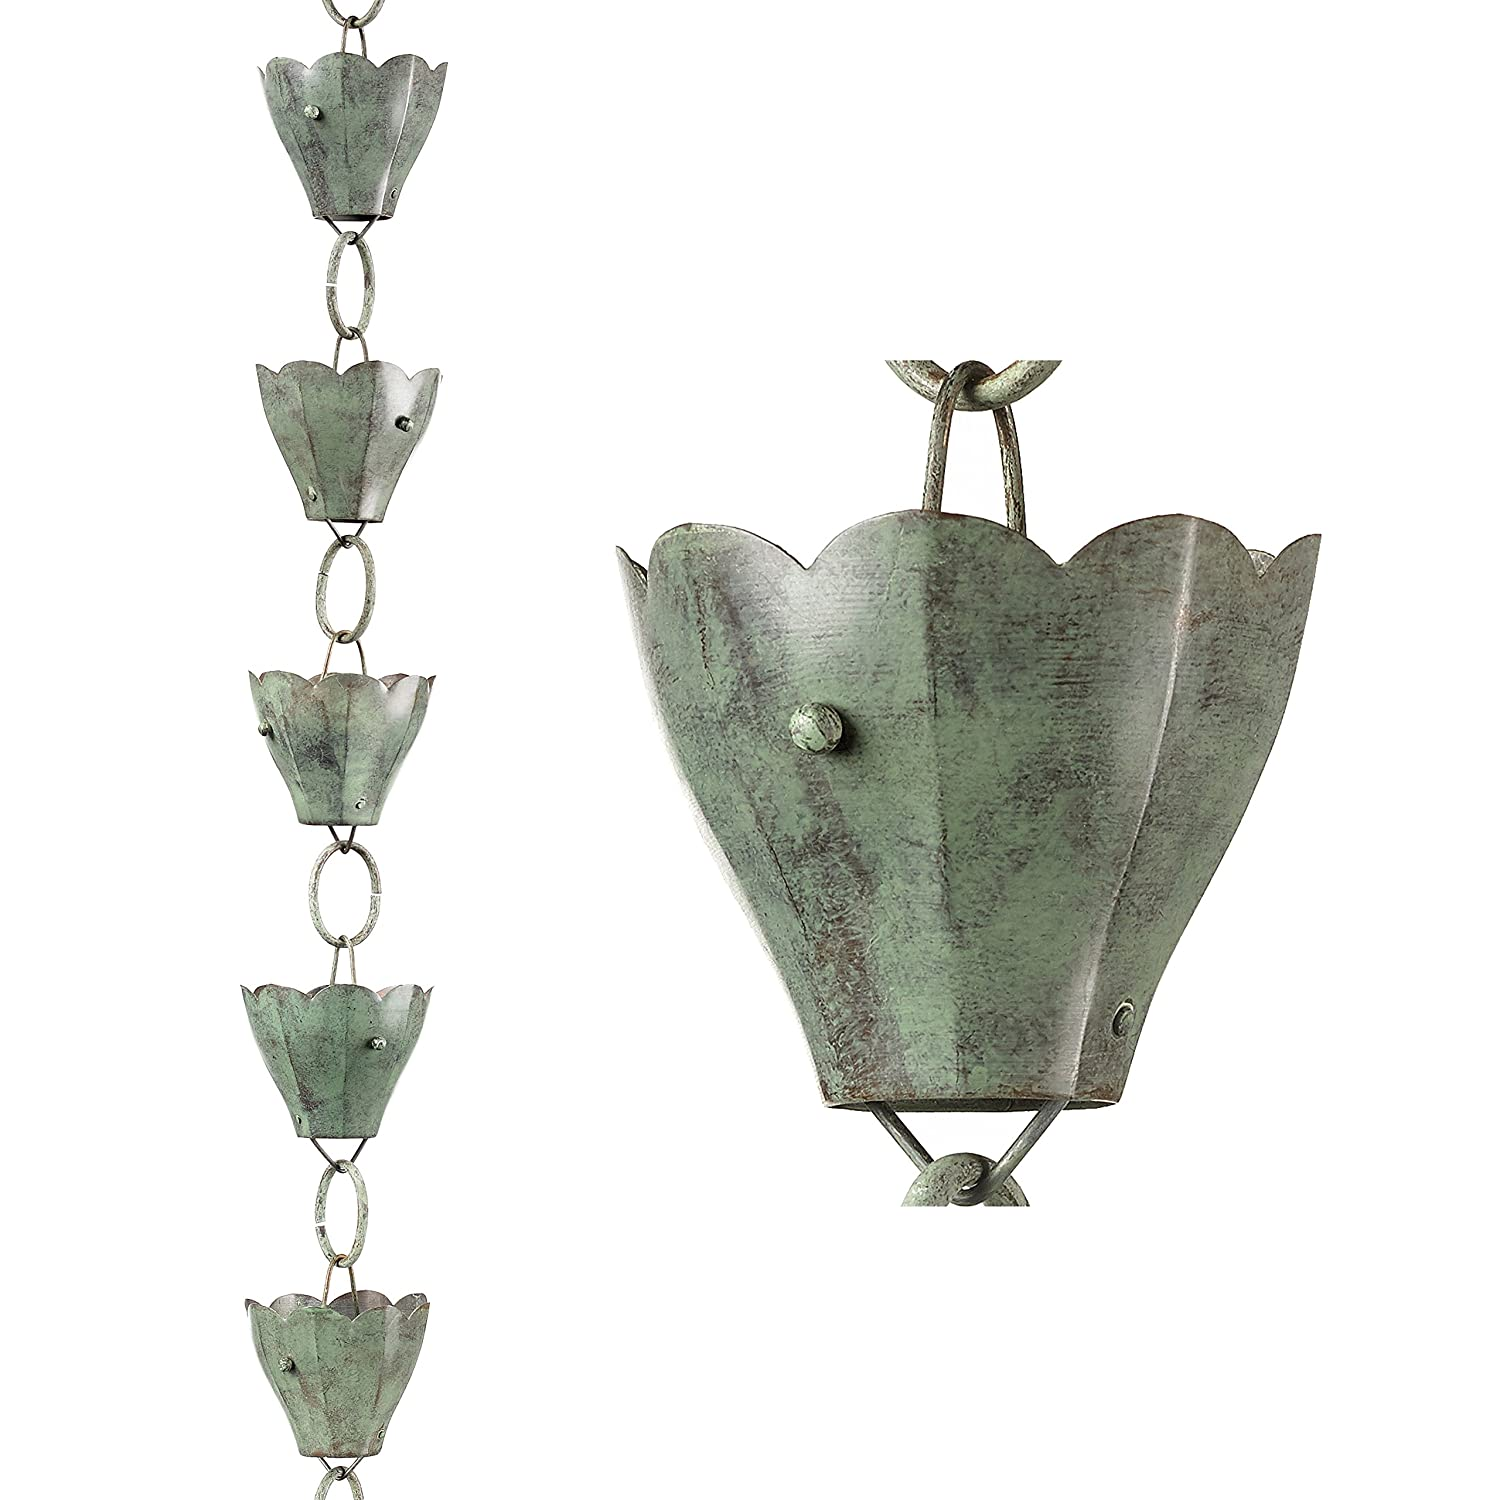 Good Directions 463P-8 13 Cup Tulip Rain Chain, 8-1/2', Polished Copper 8-1/2'